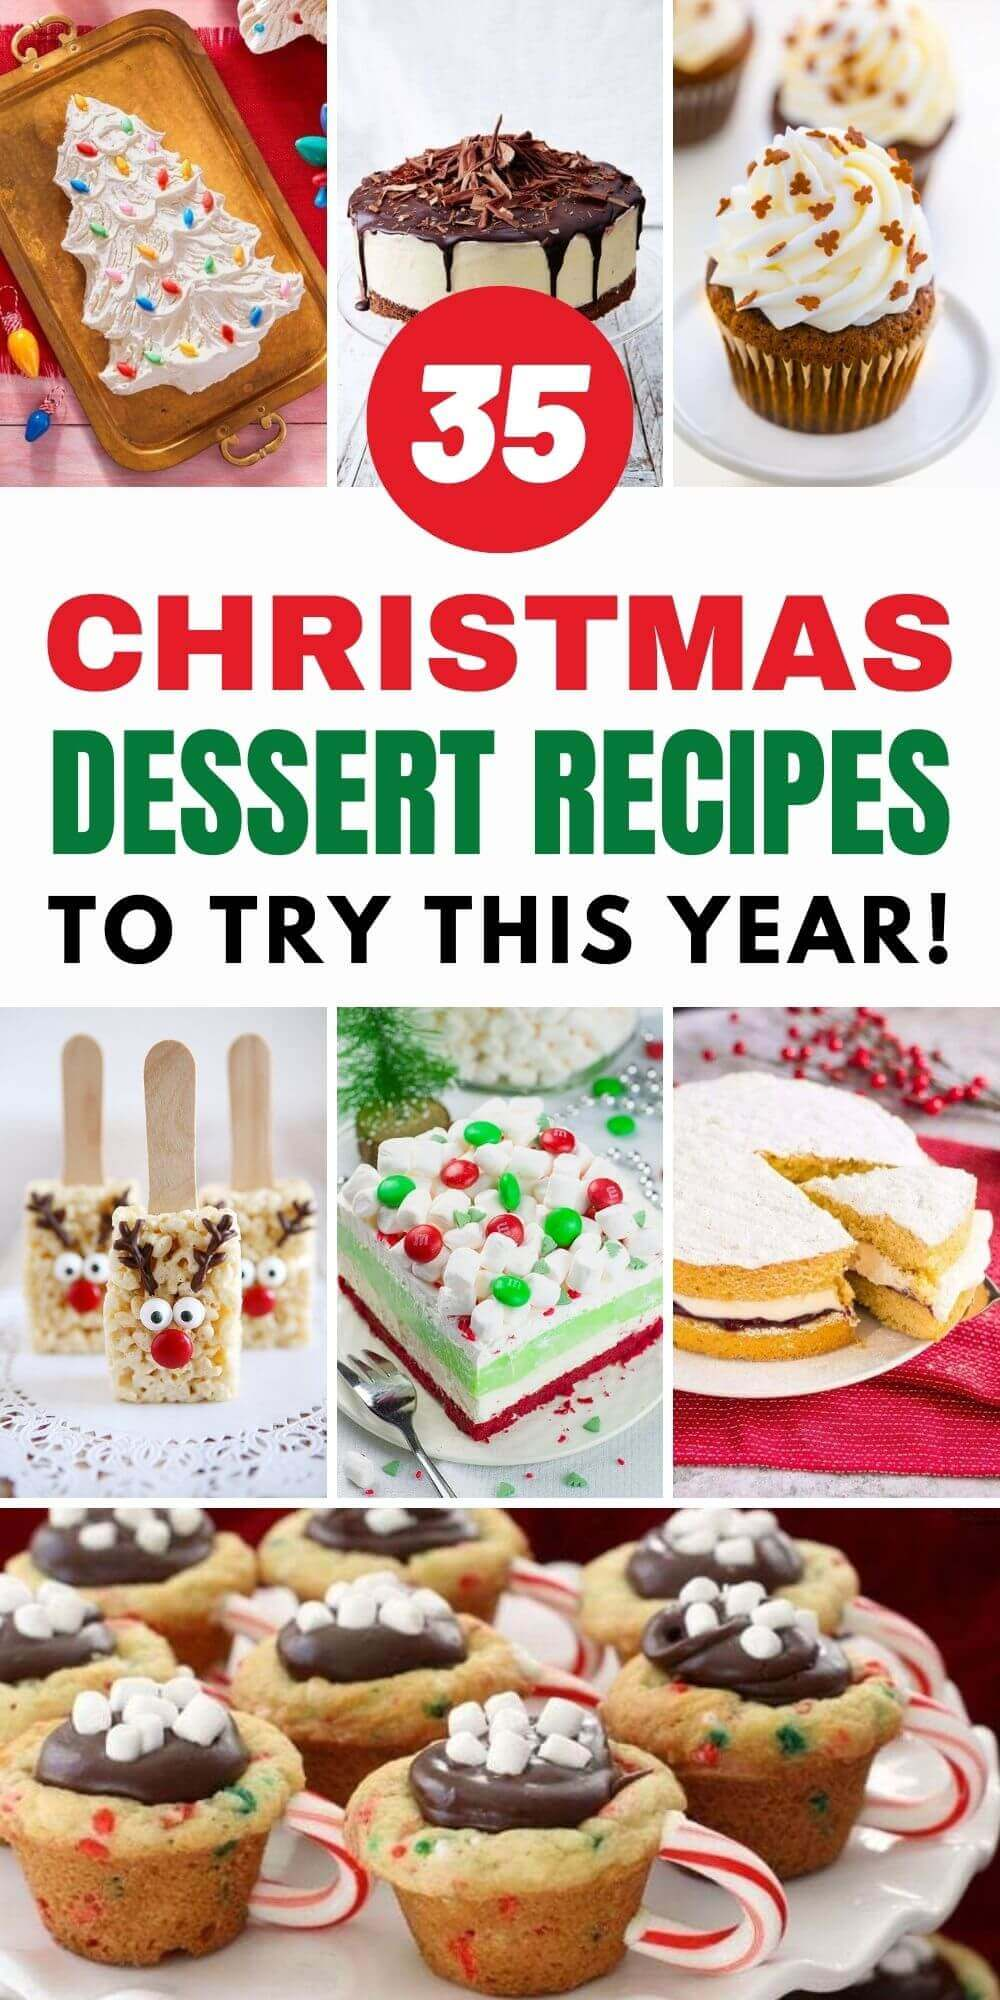 35 Christmas Dessert Recipes To Try This Year